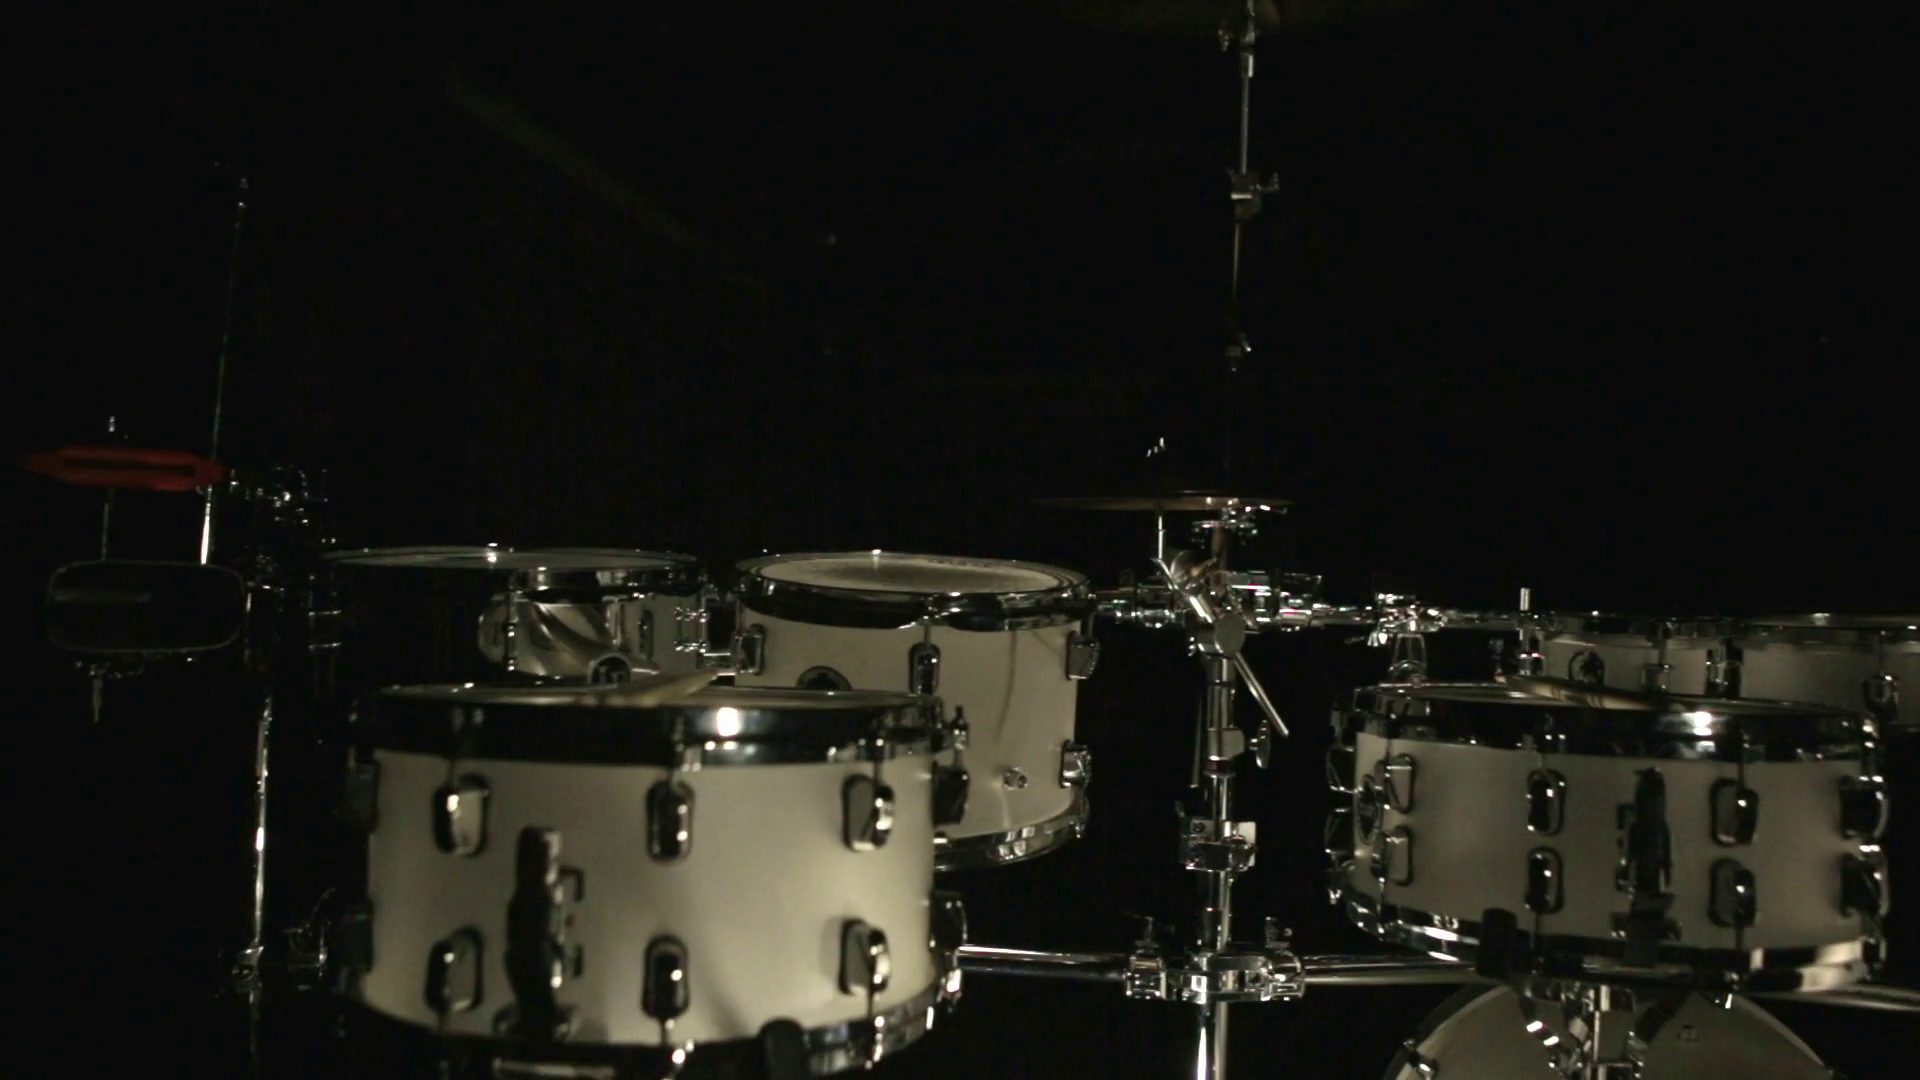 Drum set on dark background White drum kit on black background 1920x1080